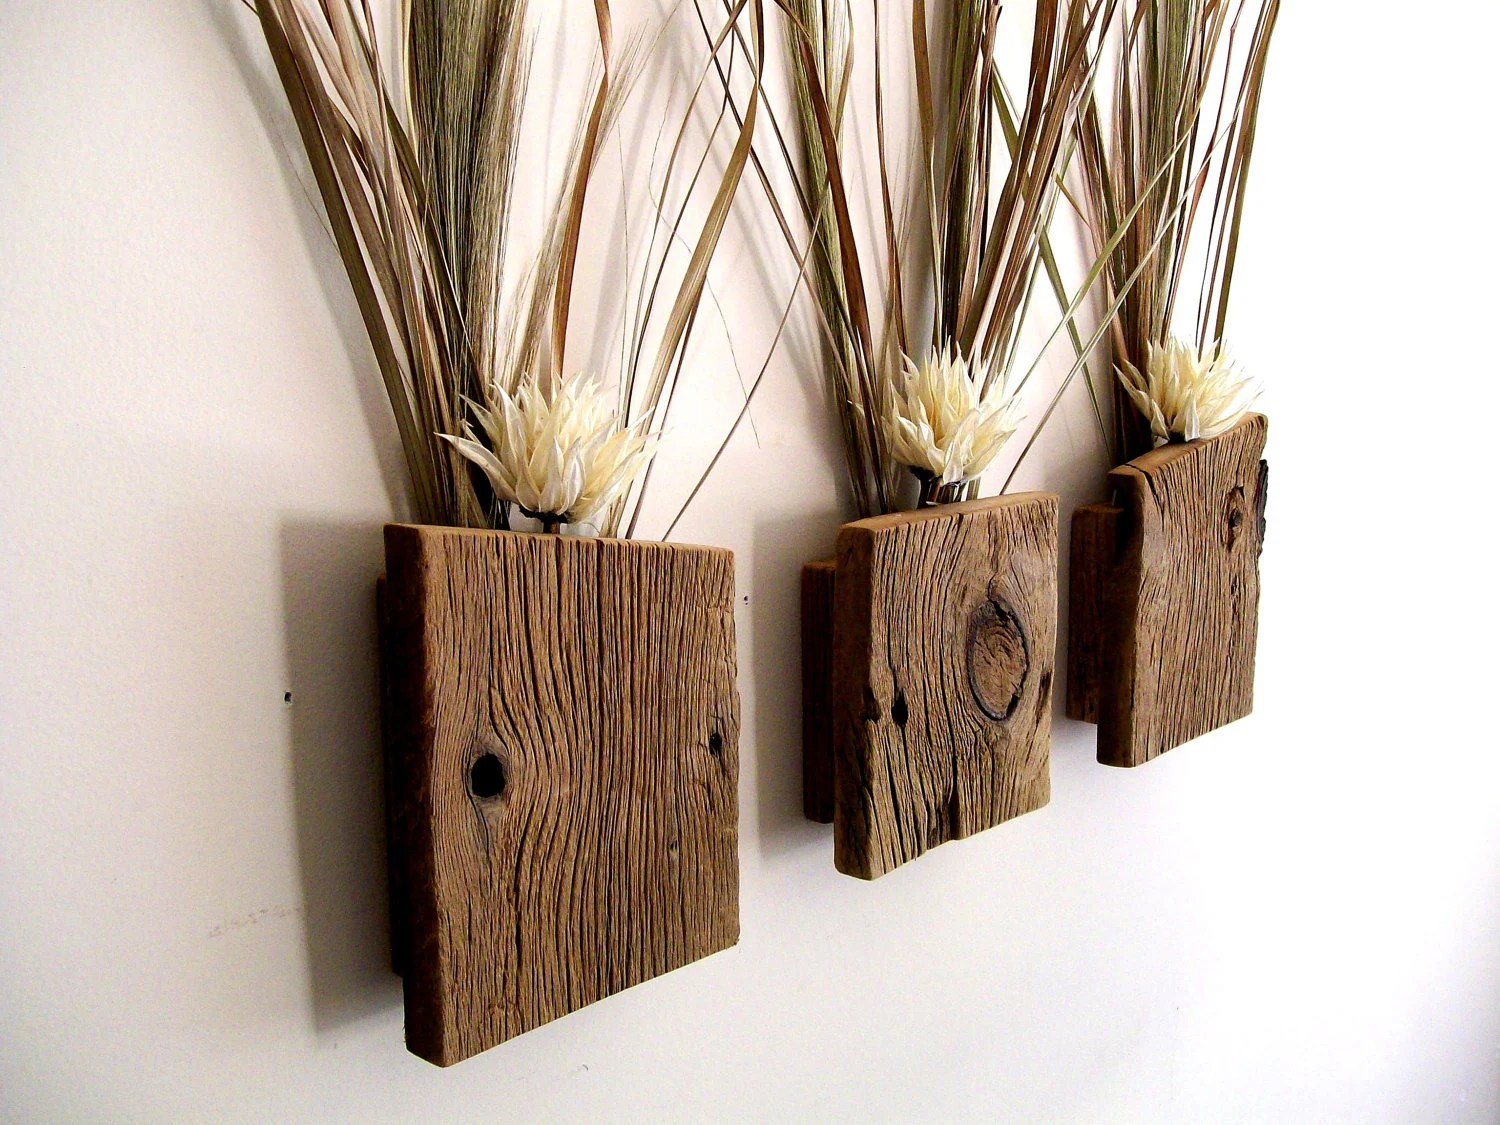 Set of 3 Rustic / Reclaimed / Barn Wood Wall Vase / Flower on Hanging Wall Sconces For Flowers id=60735